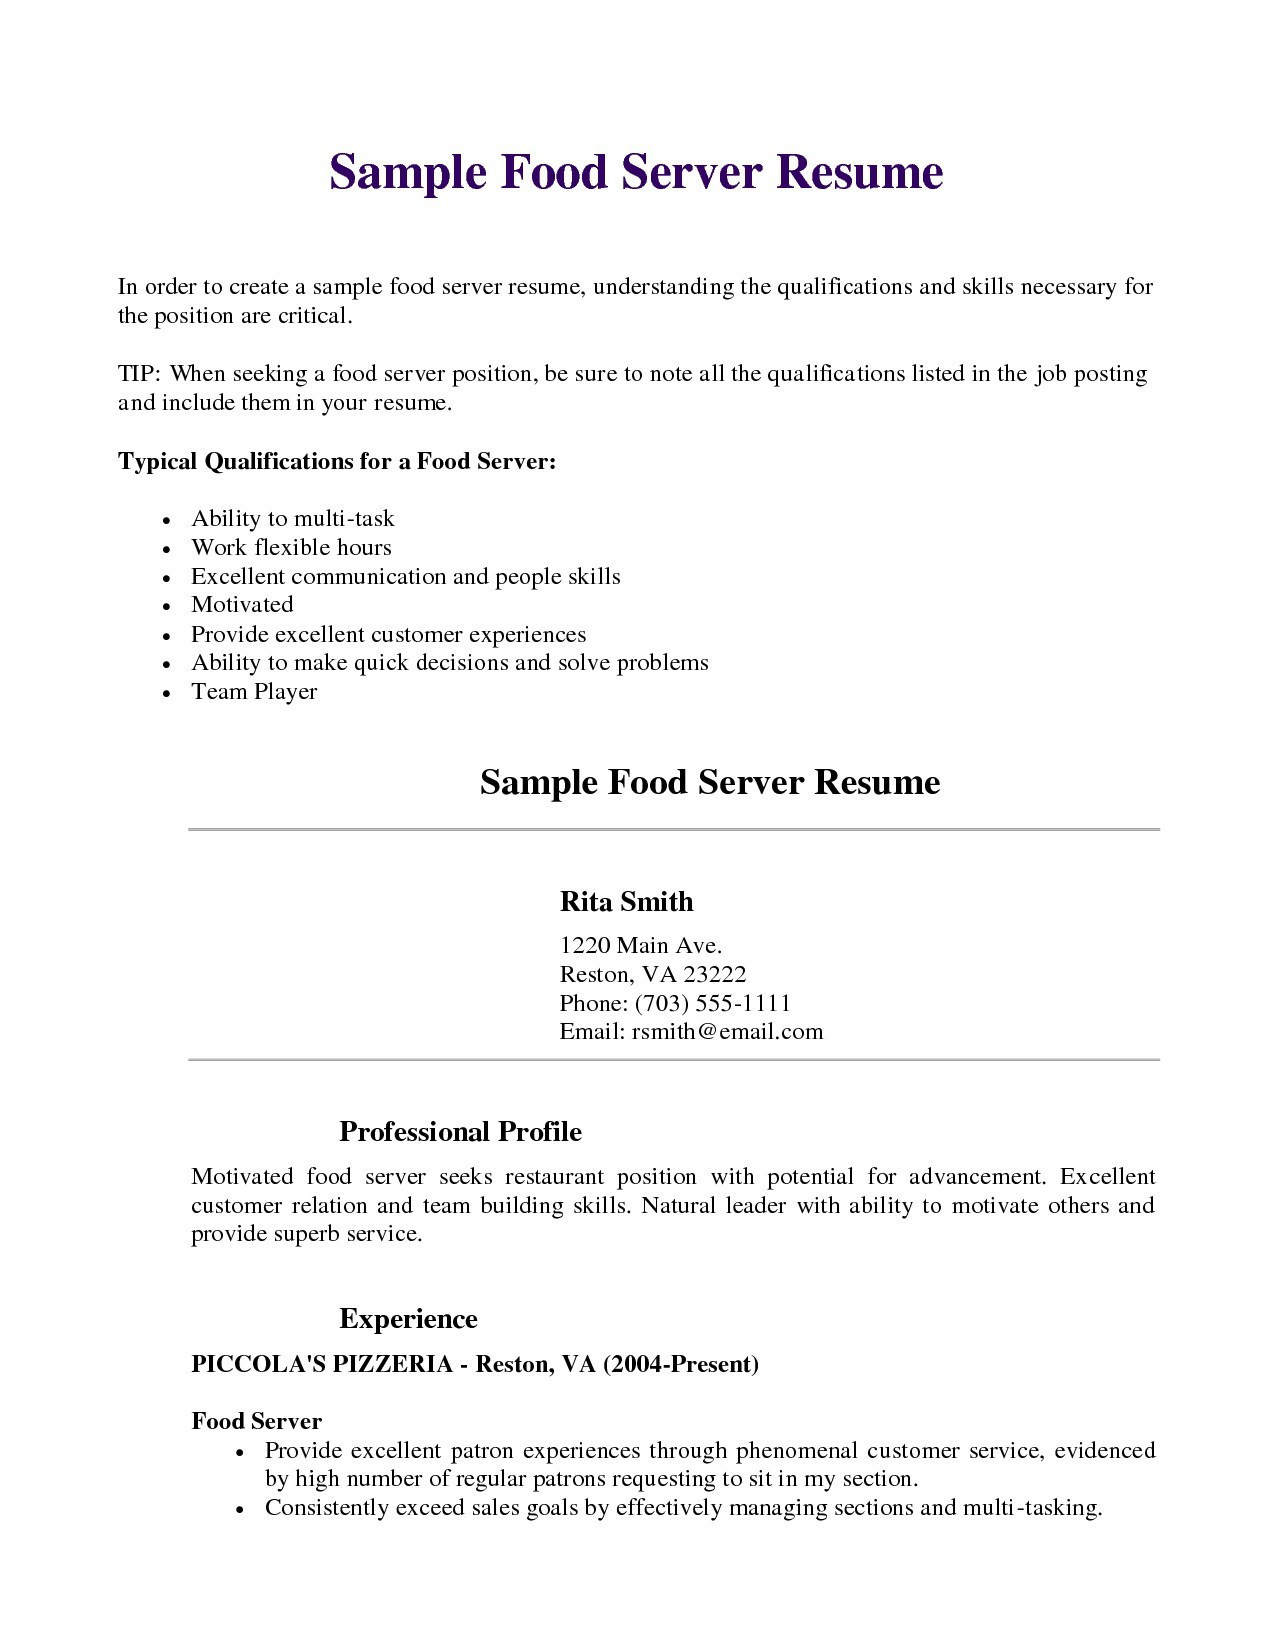 Food Service Skills for Resume - Server Resume Elegant Food Server Resume Inspirational Server Resume